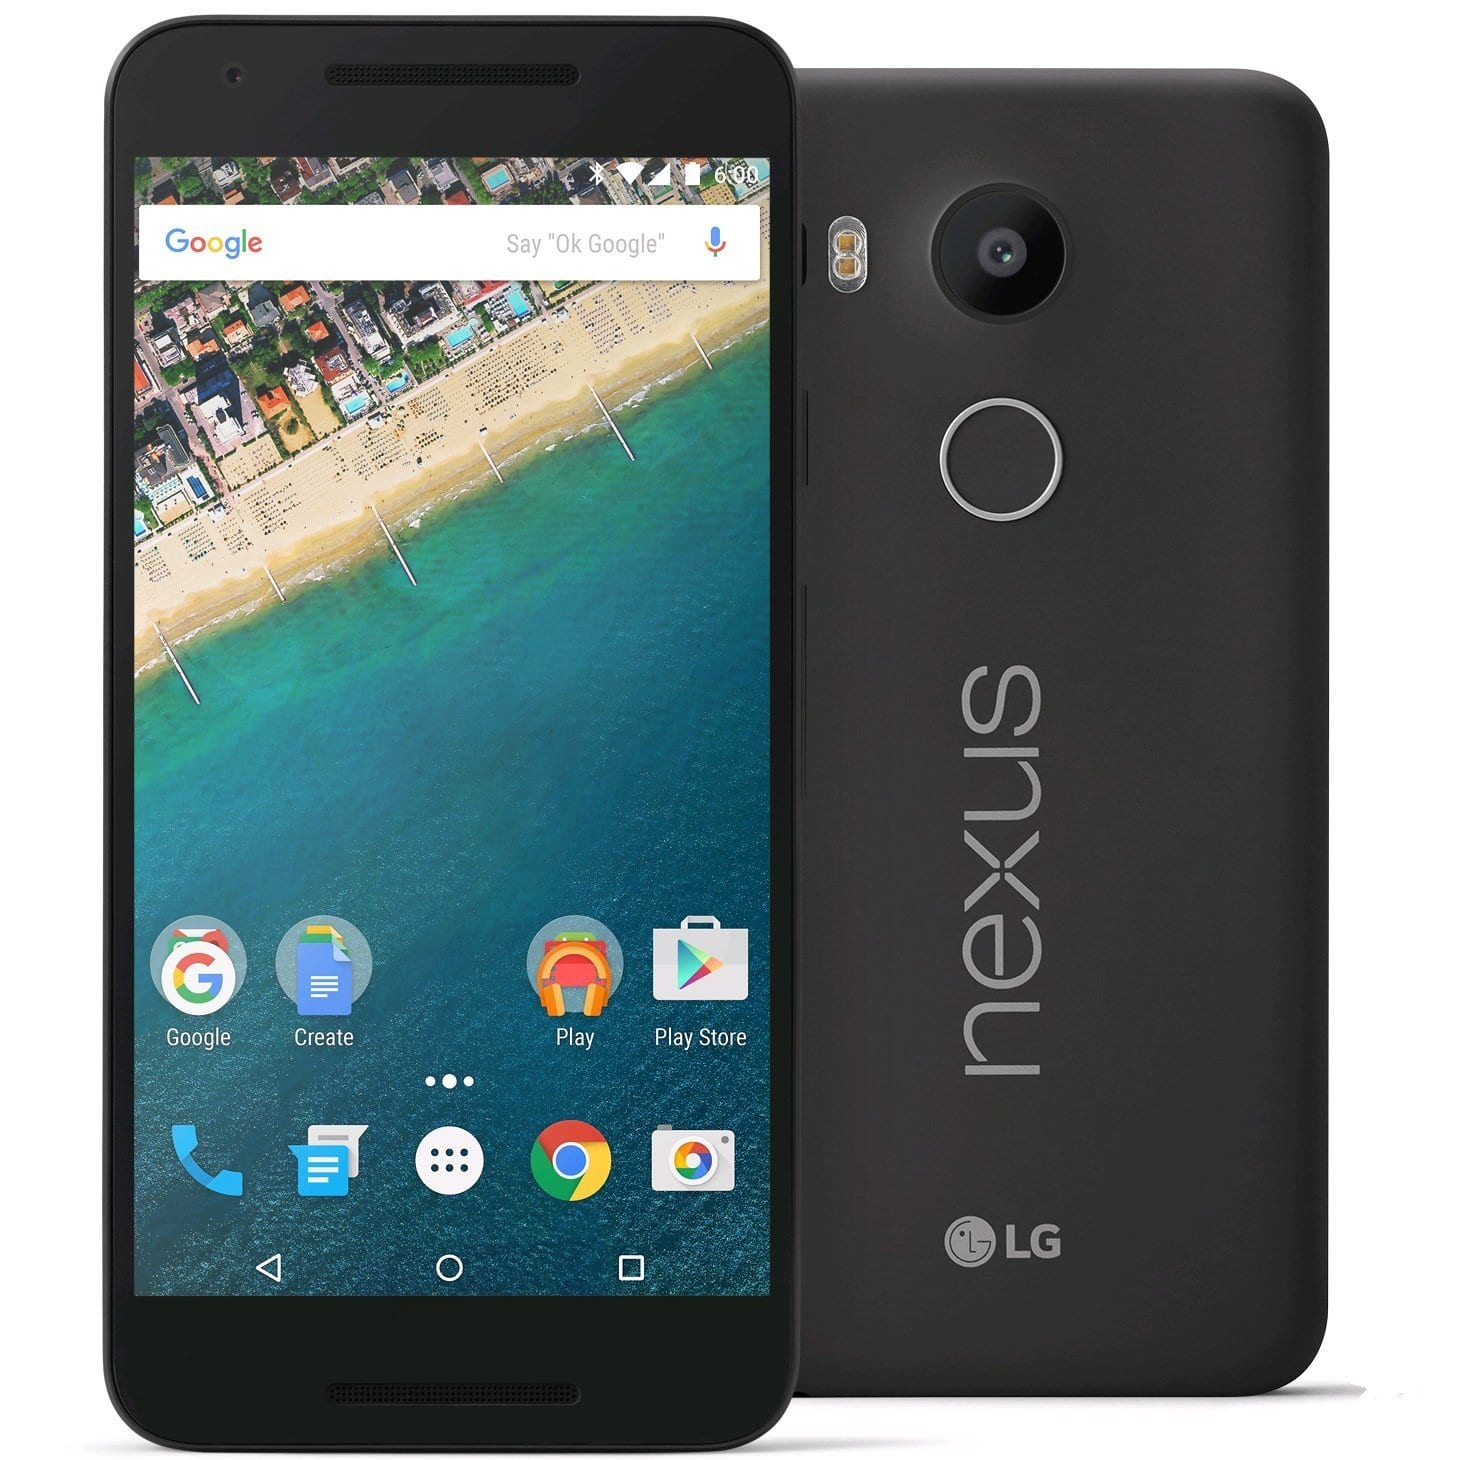 32GB LG Nexus 5X H790 4G LTE Android Unlocked Smartphone  $275 + Free Shipping